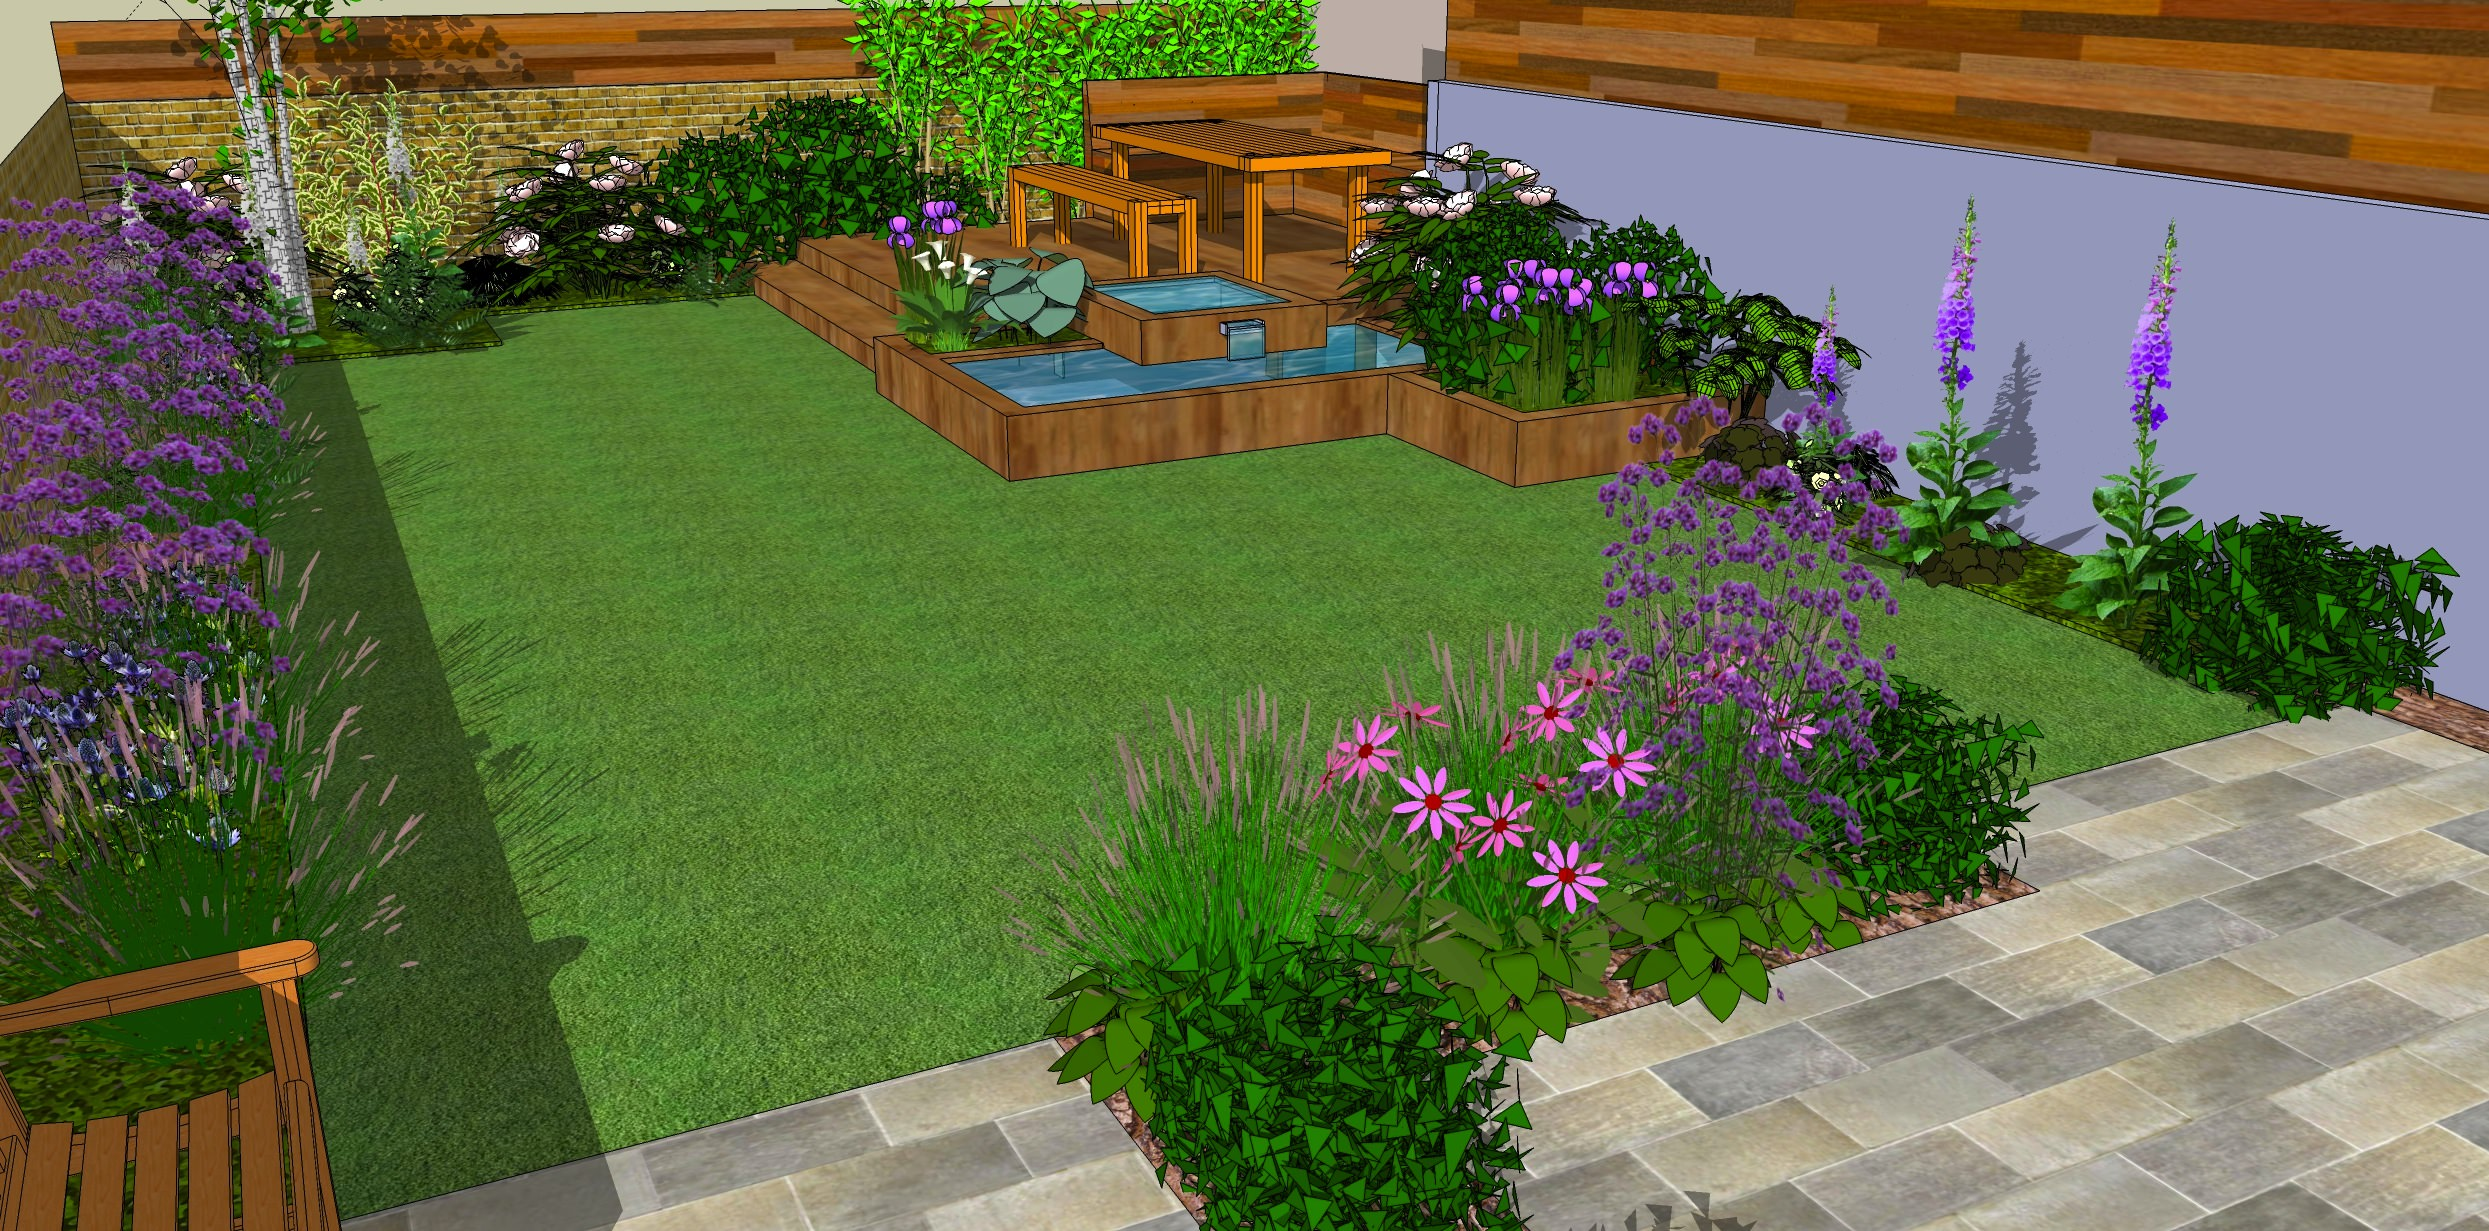 Low maintenance garden designs garden club london for Garden design ideas in uk